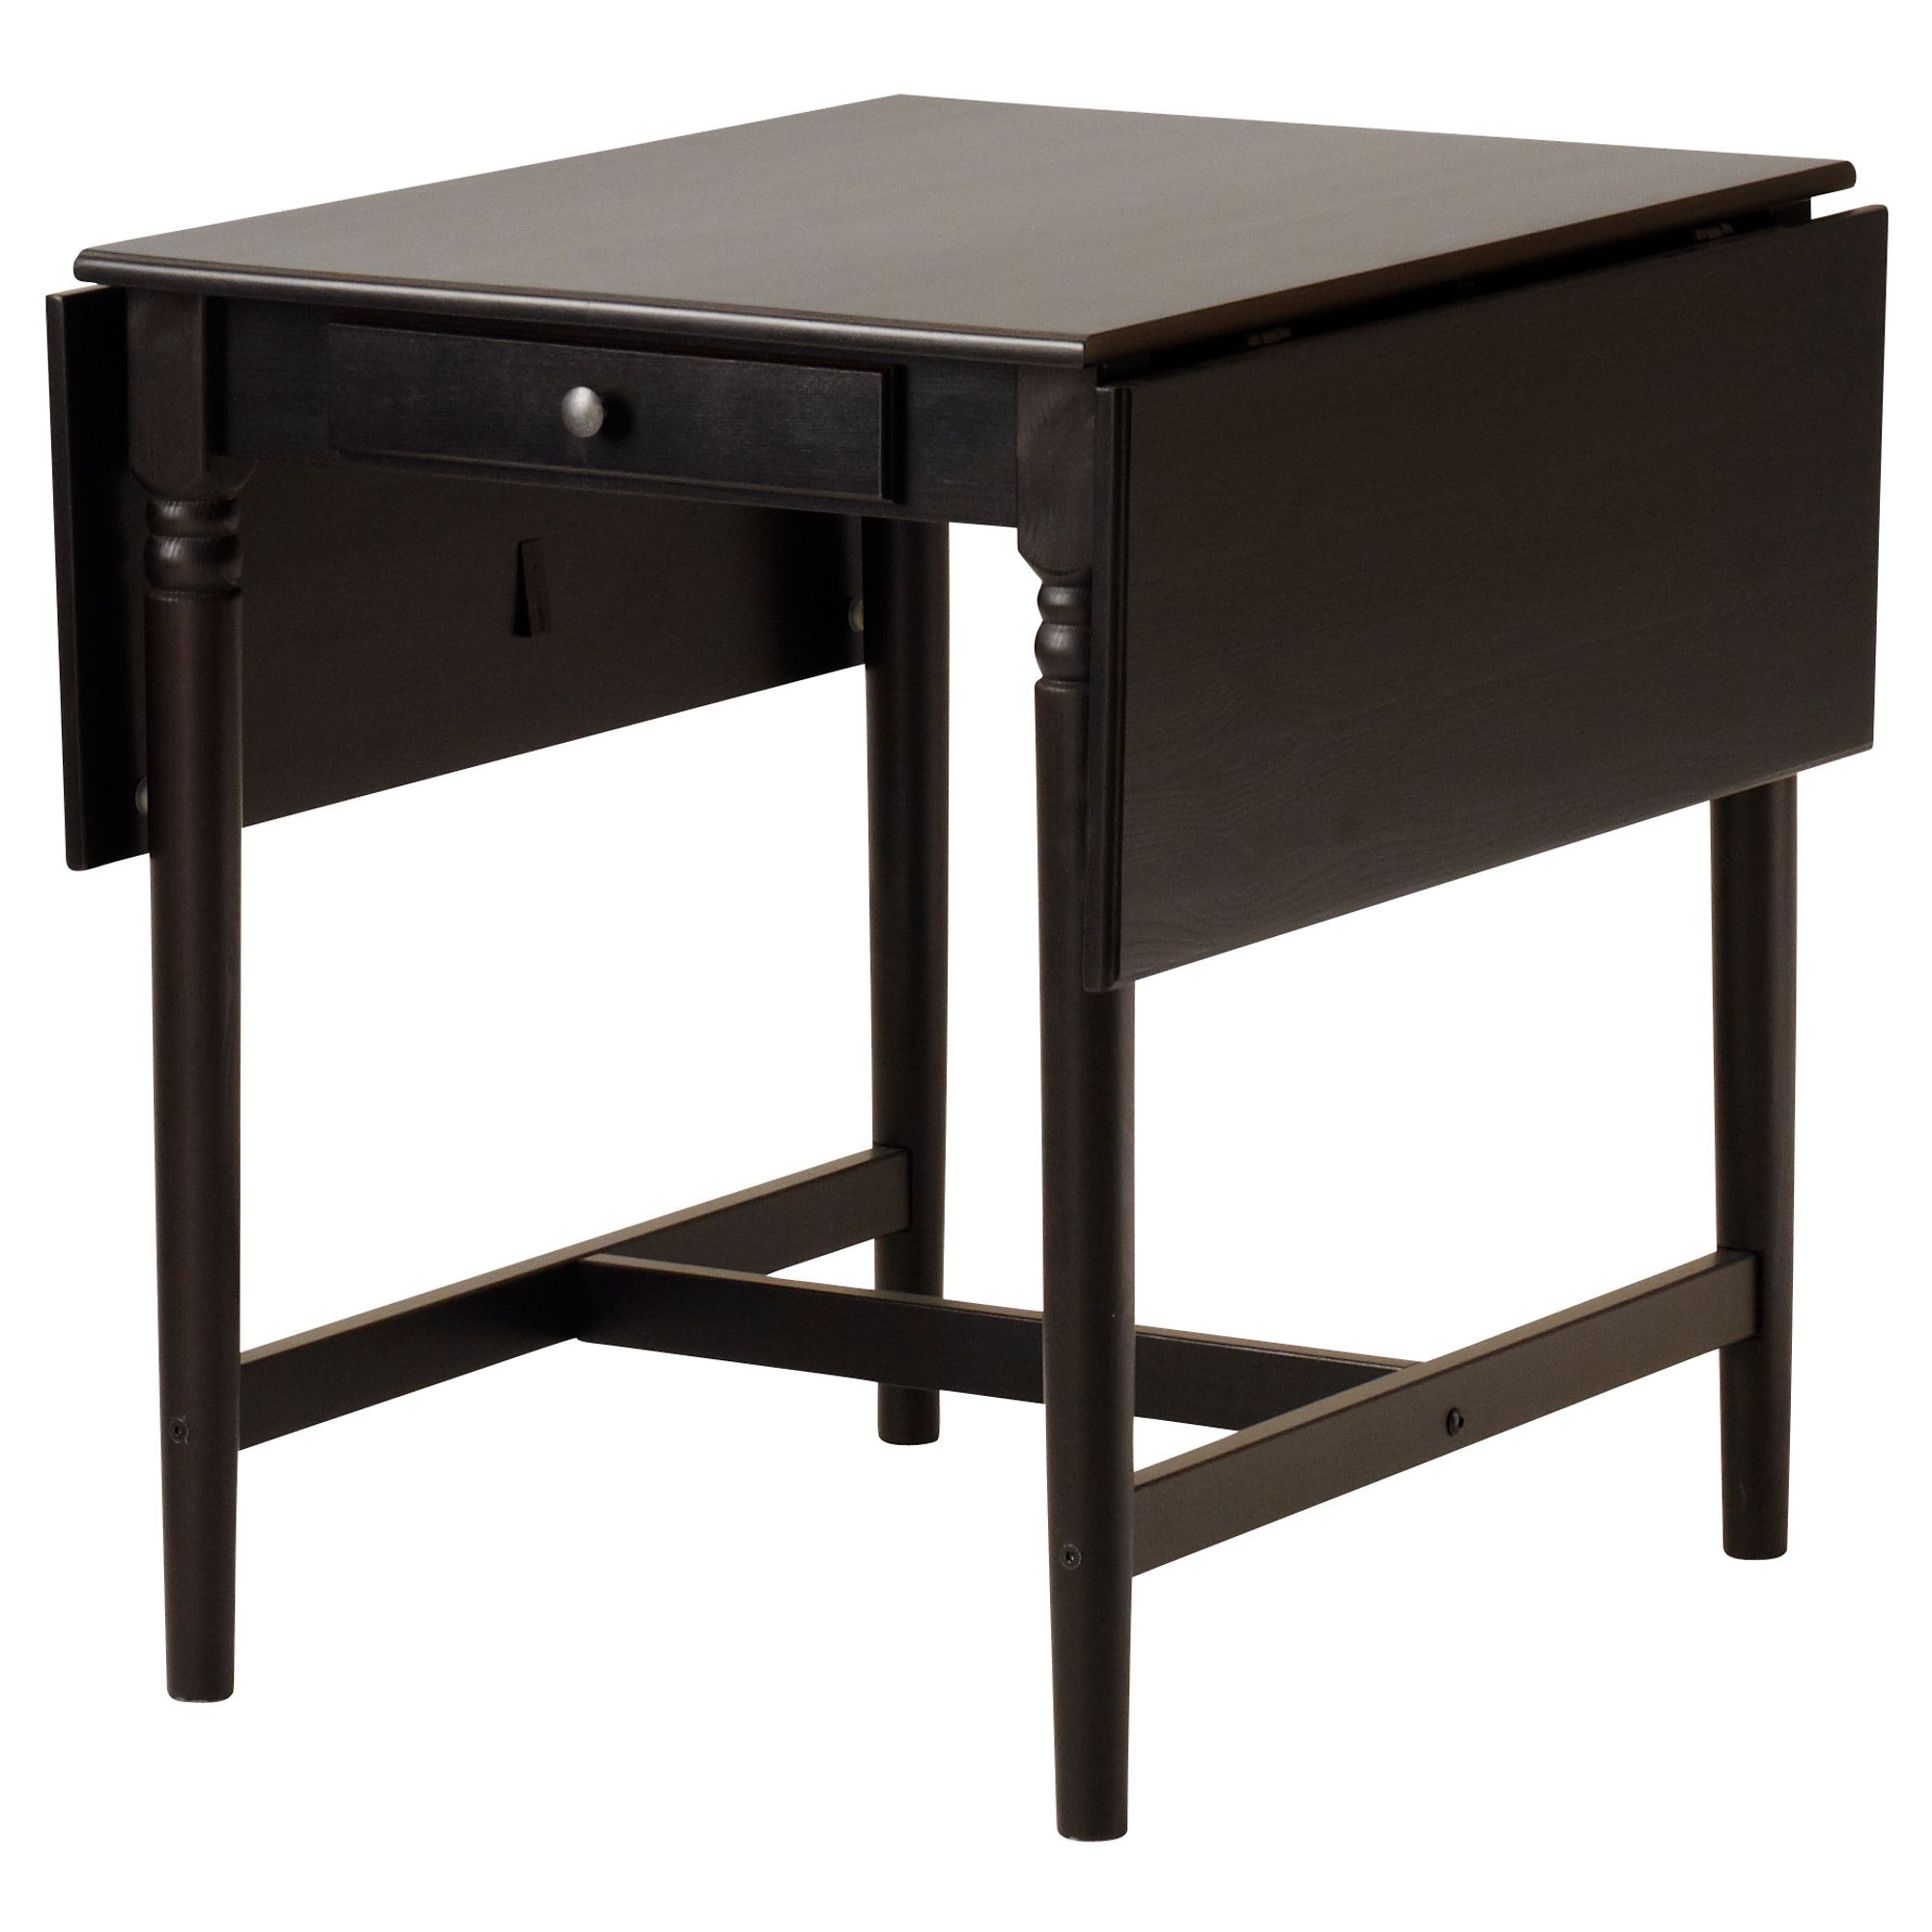 Ikea Tisch Schwarzbraun 129 00 Ingatorp Drop Leaf Table Ikea Here Is Another Table